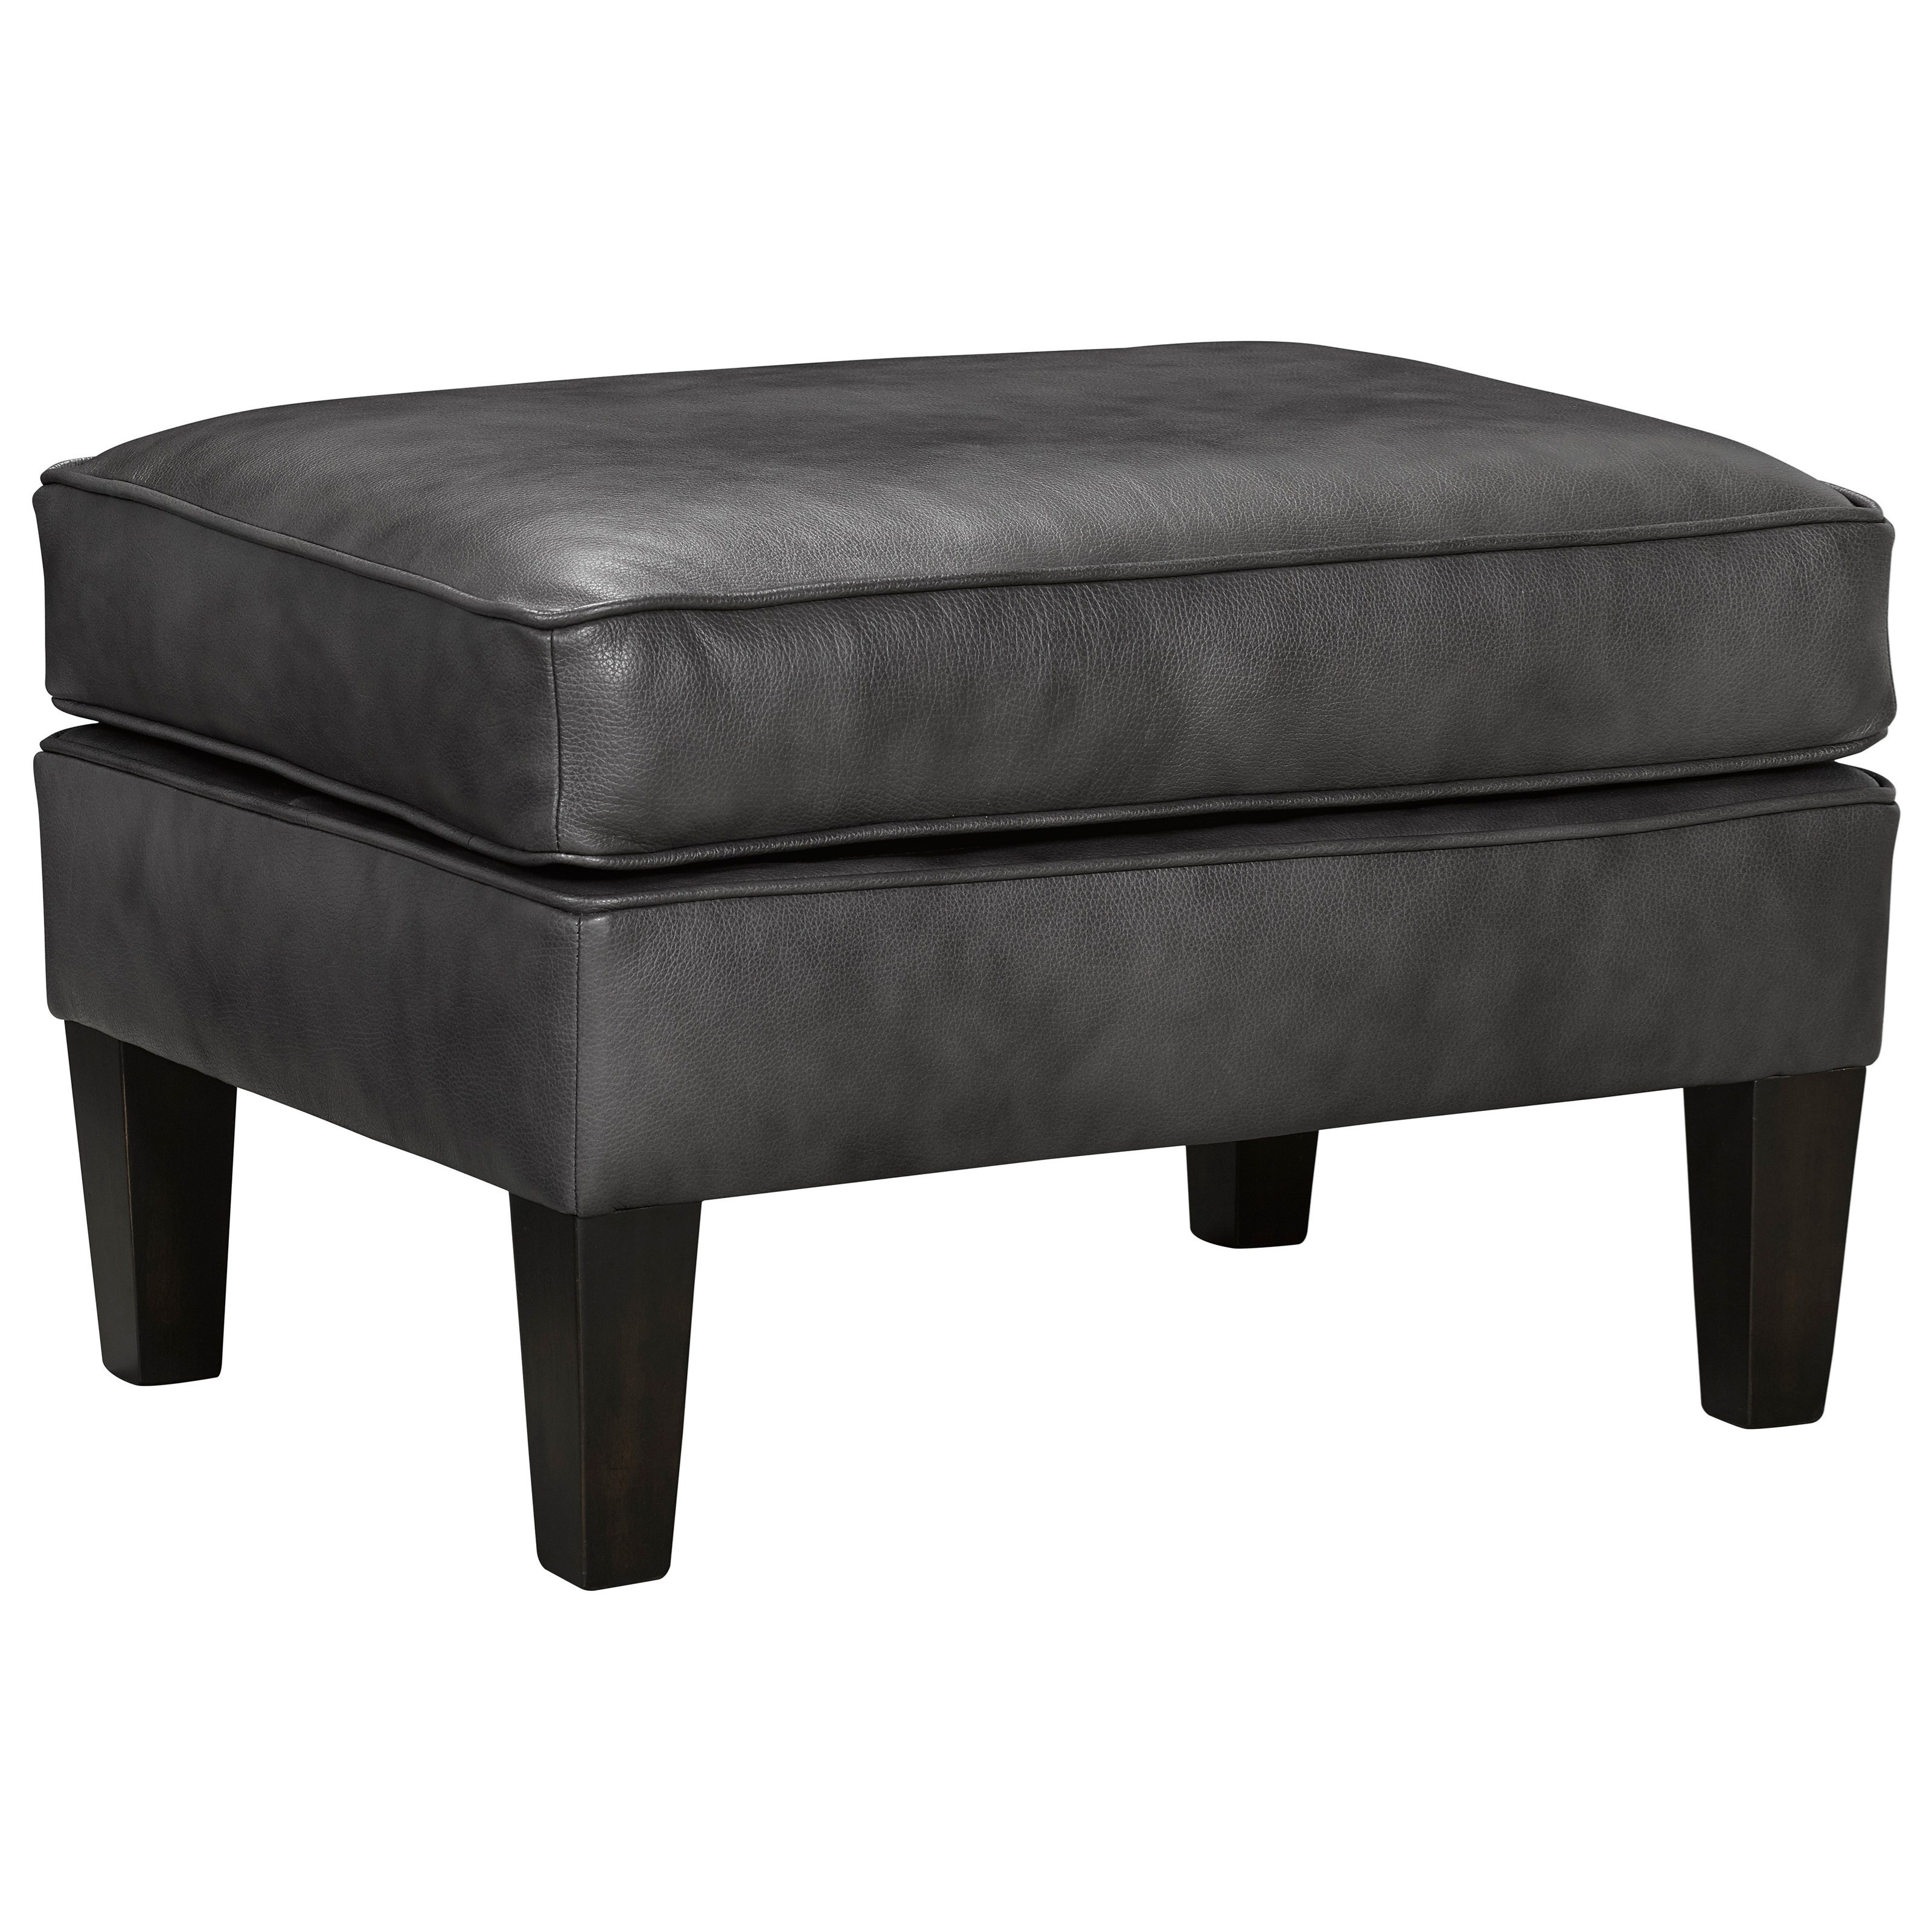 Broyhill Furniture Able Ottoman - Item Number: L9033-500-0063-98